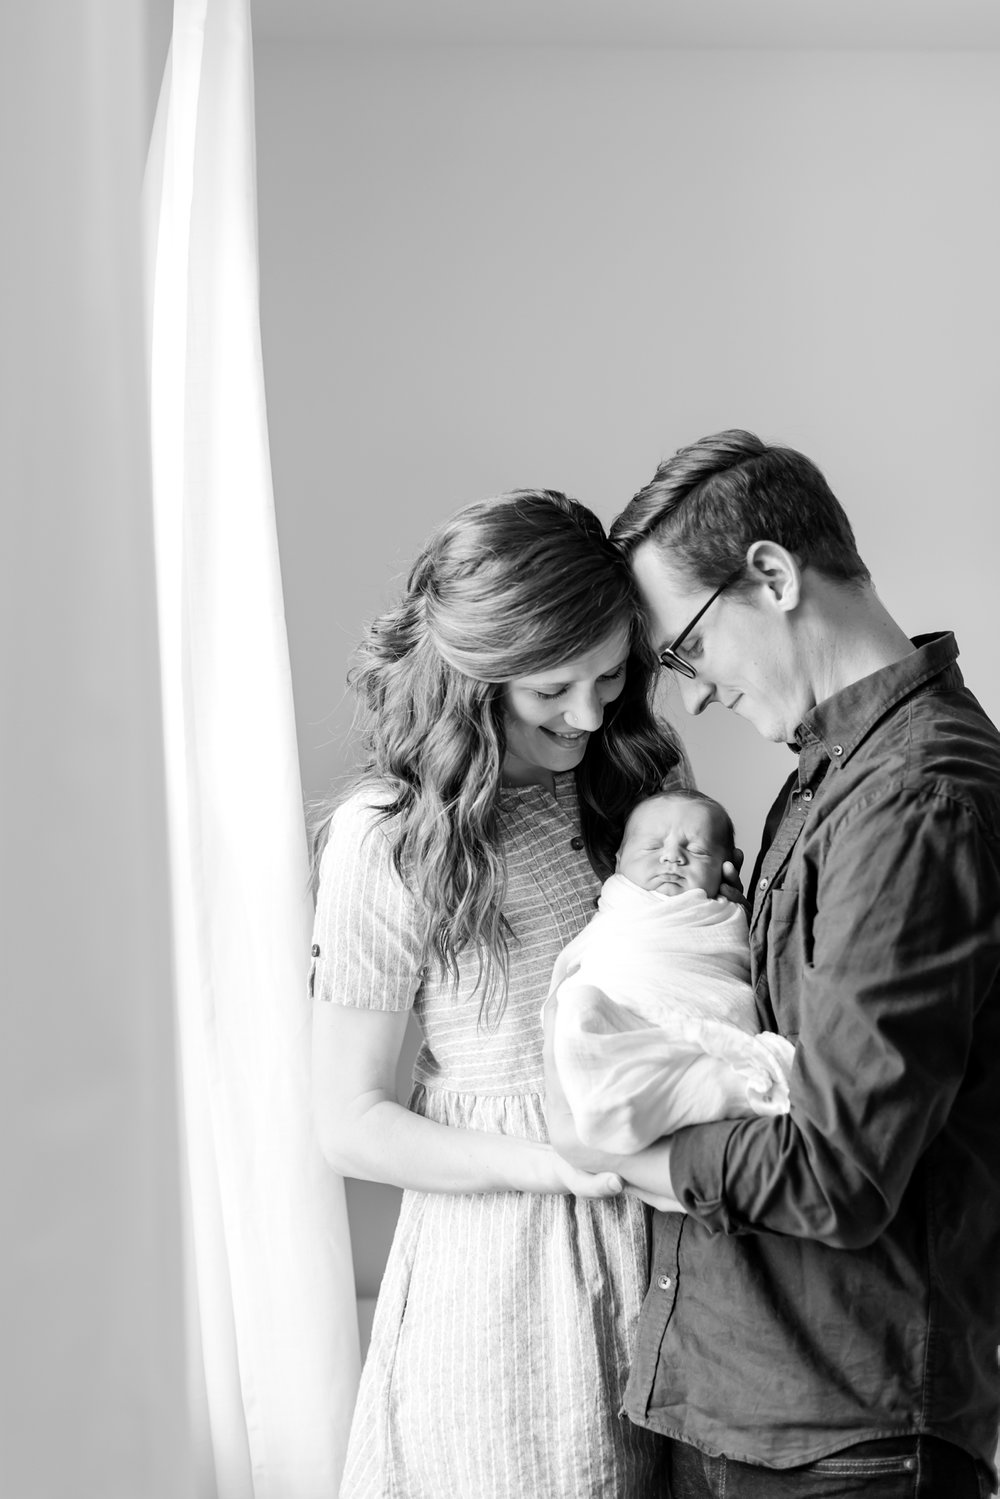 See more from   baby Levi's newborn session here  !